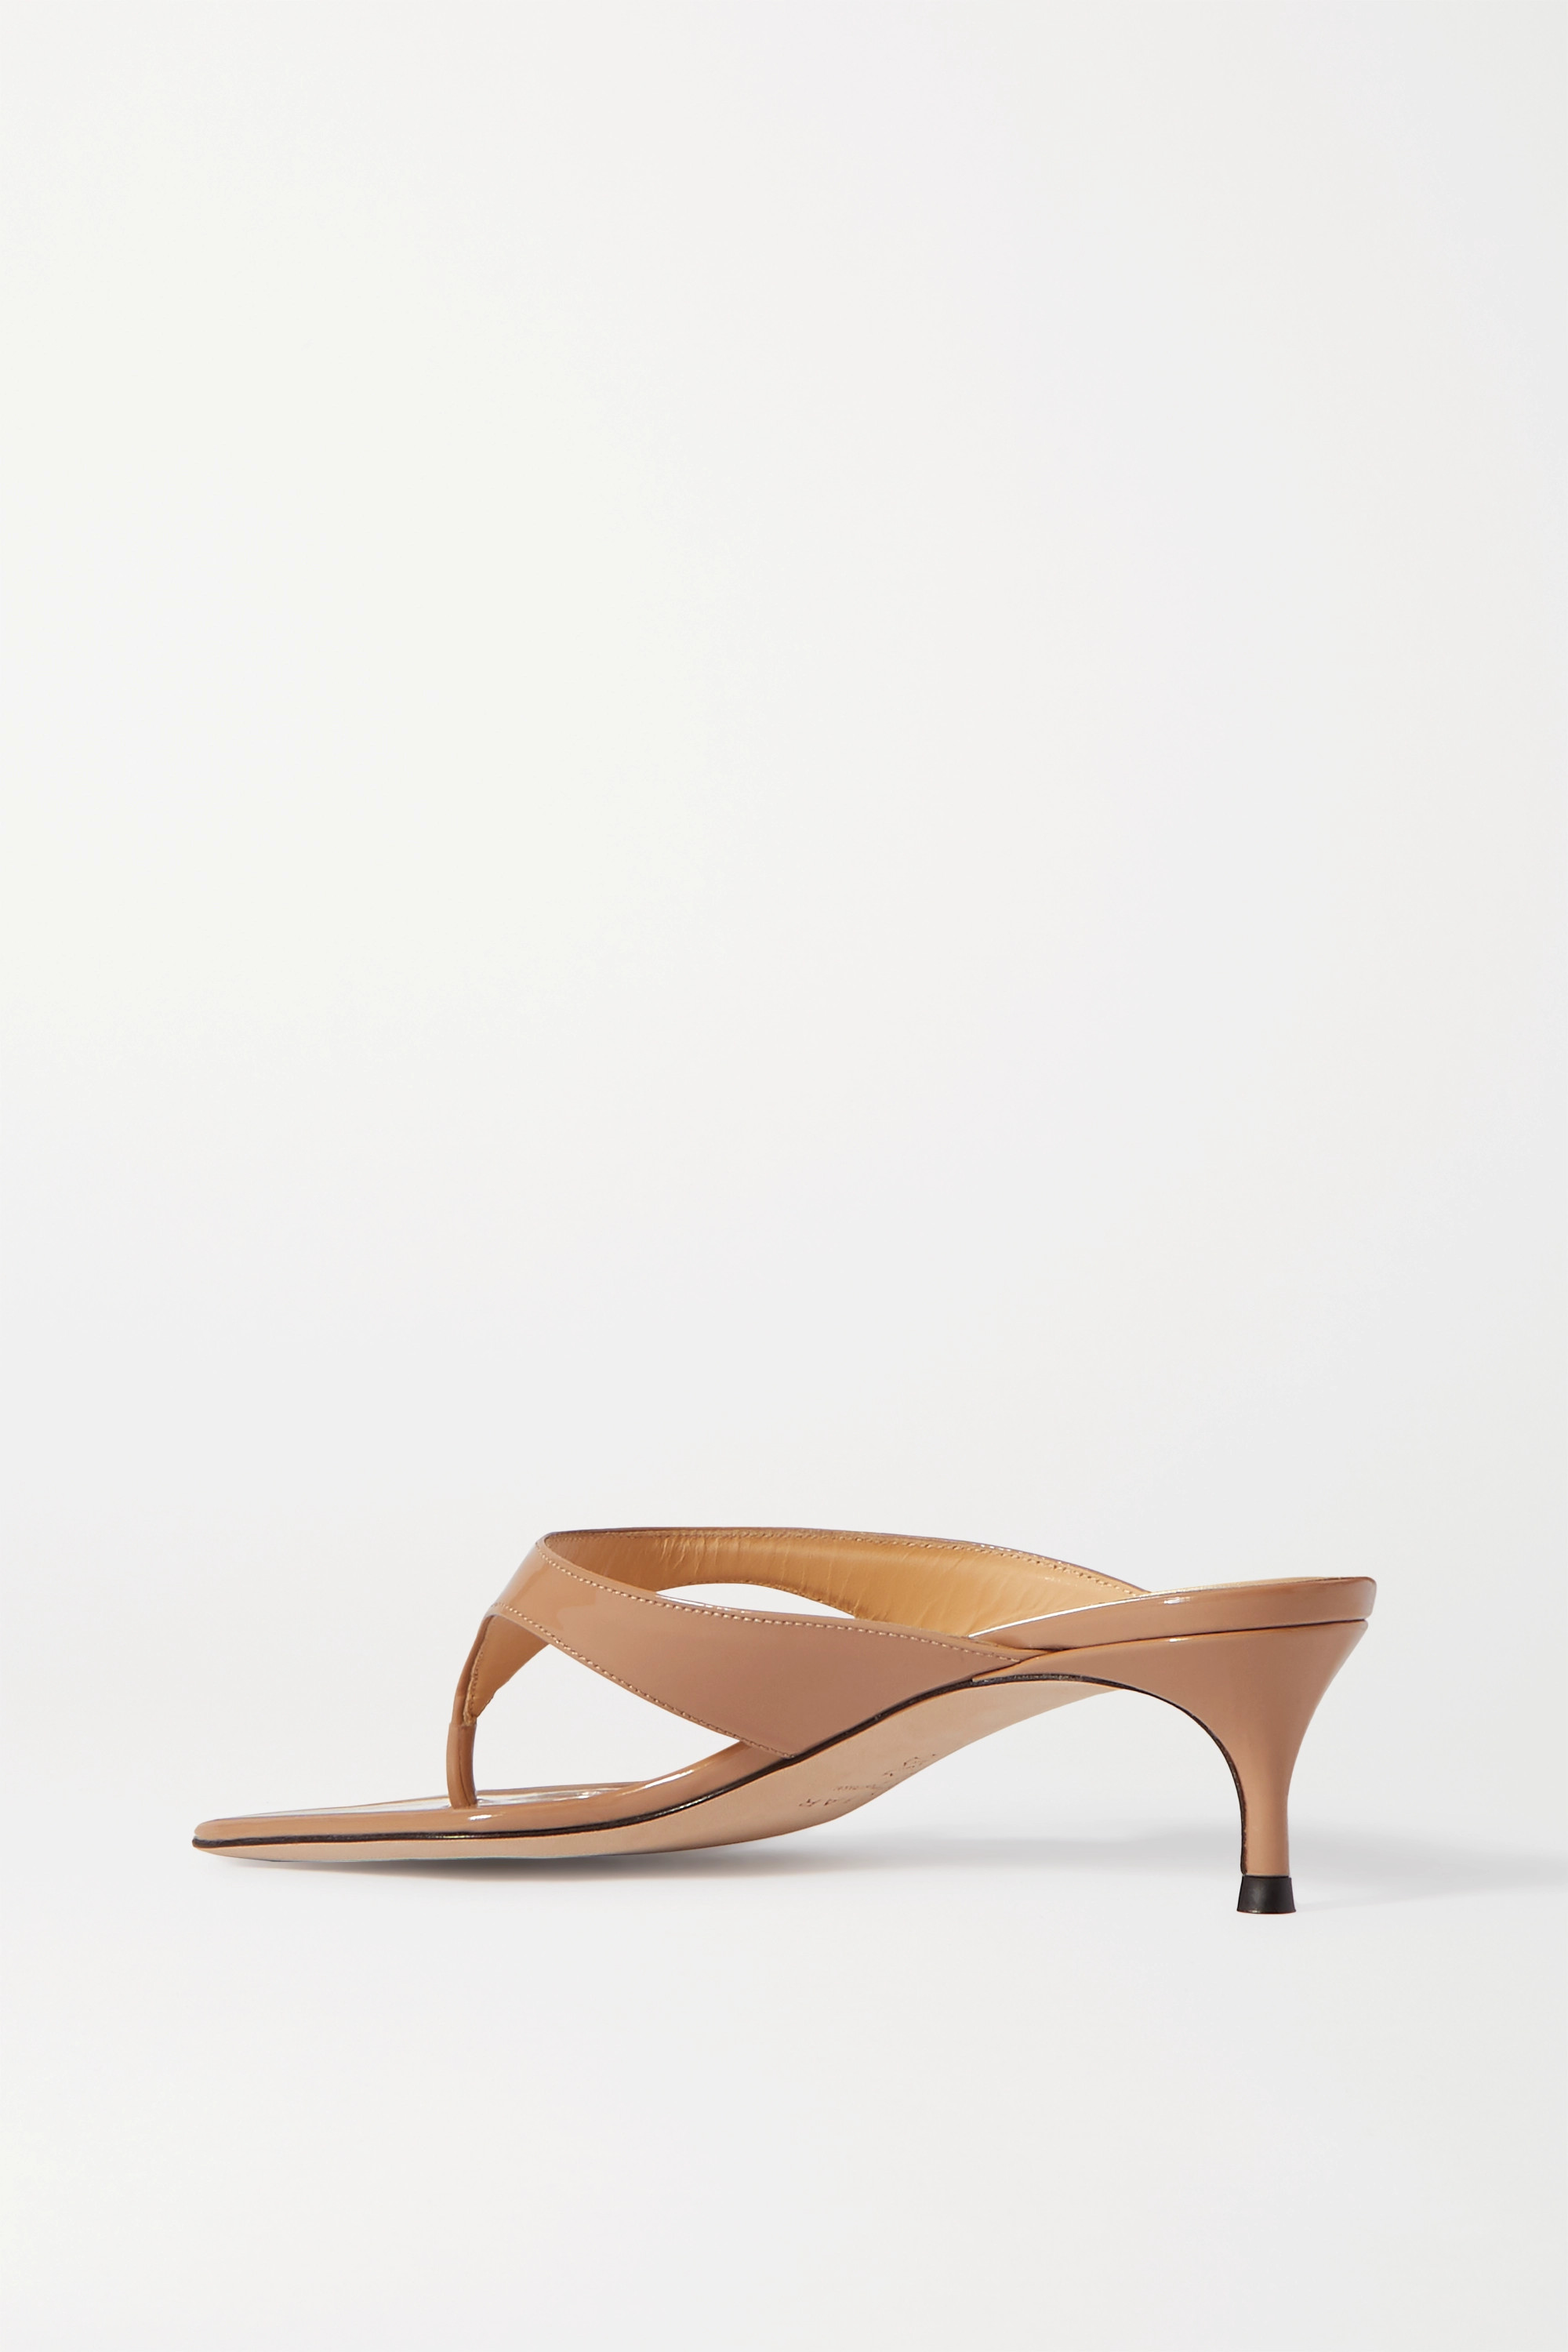 BY FAR Jackie patent-leather sandals